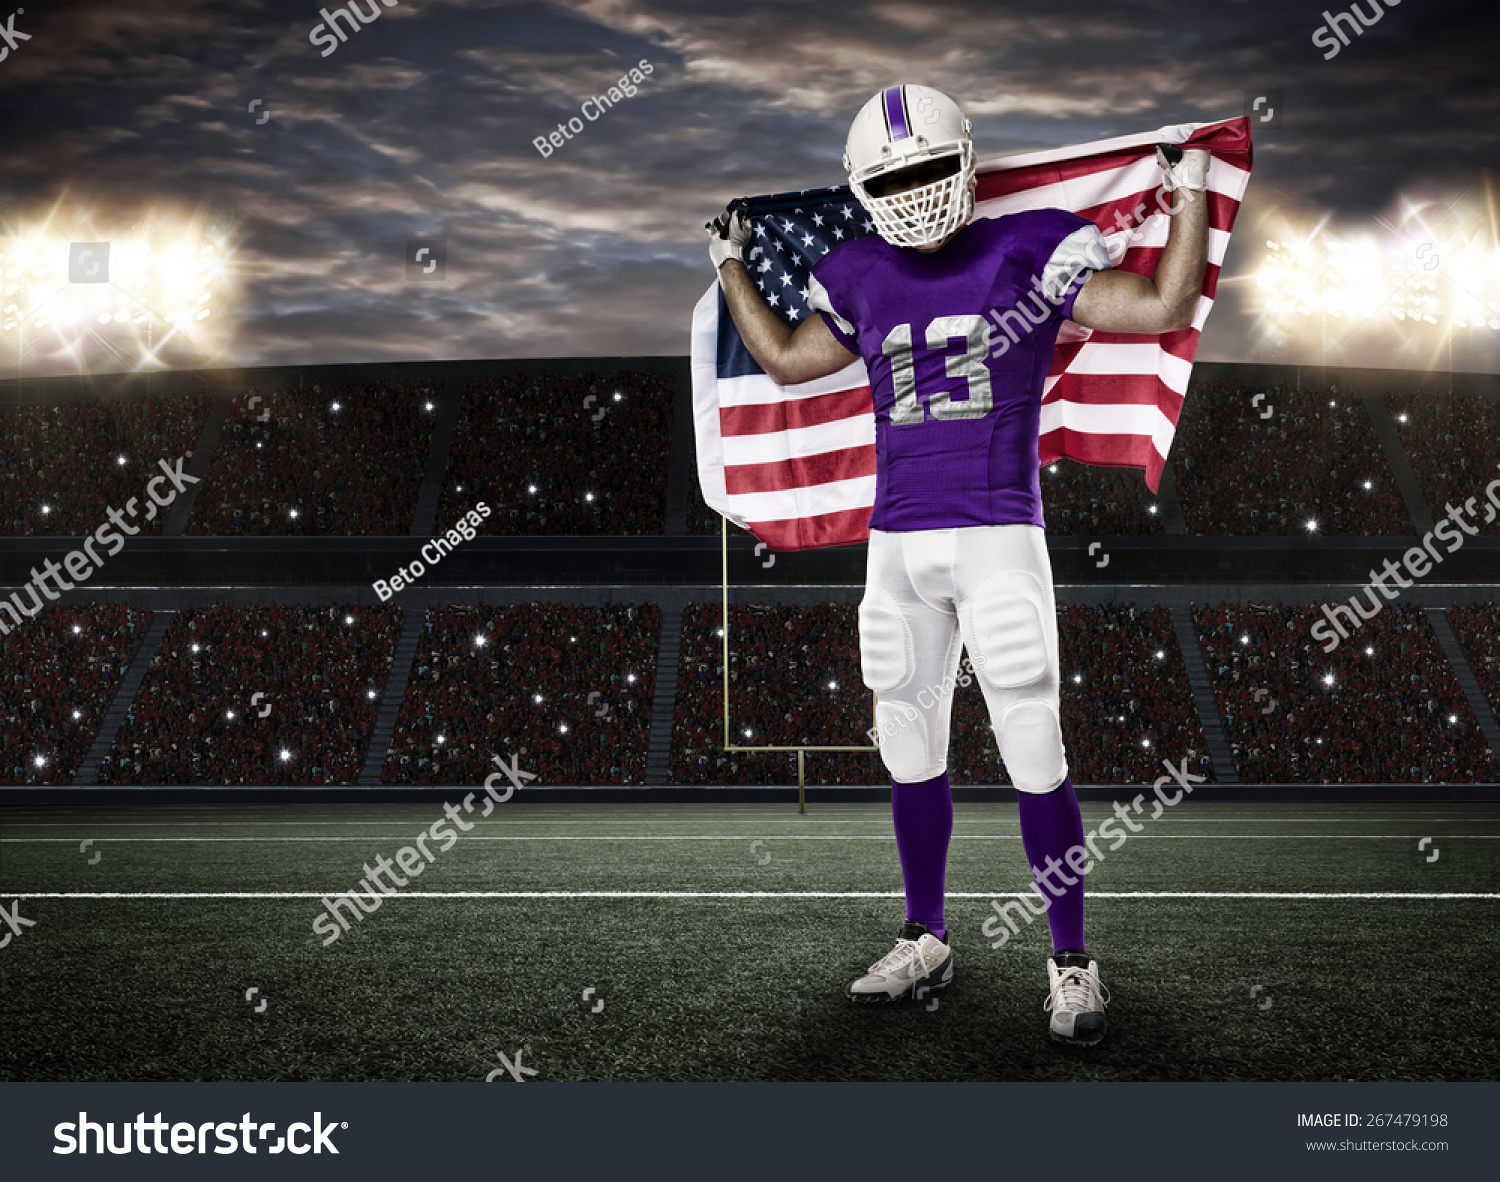 31feea10c3a Football Player with a yellow uniform and a american flag